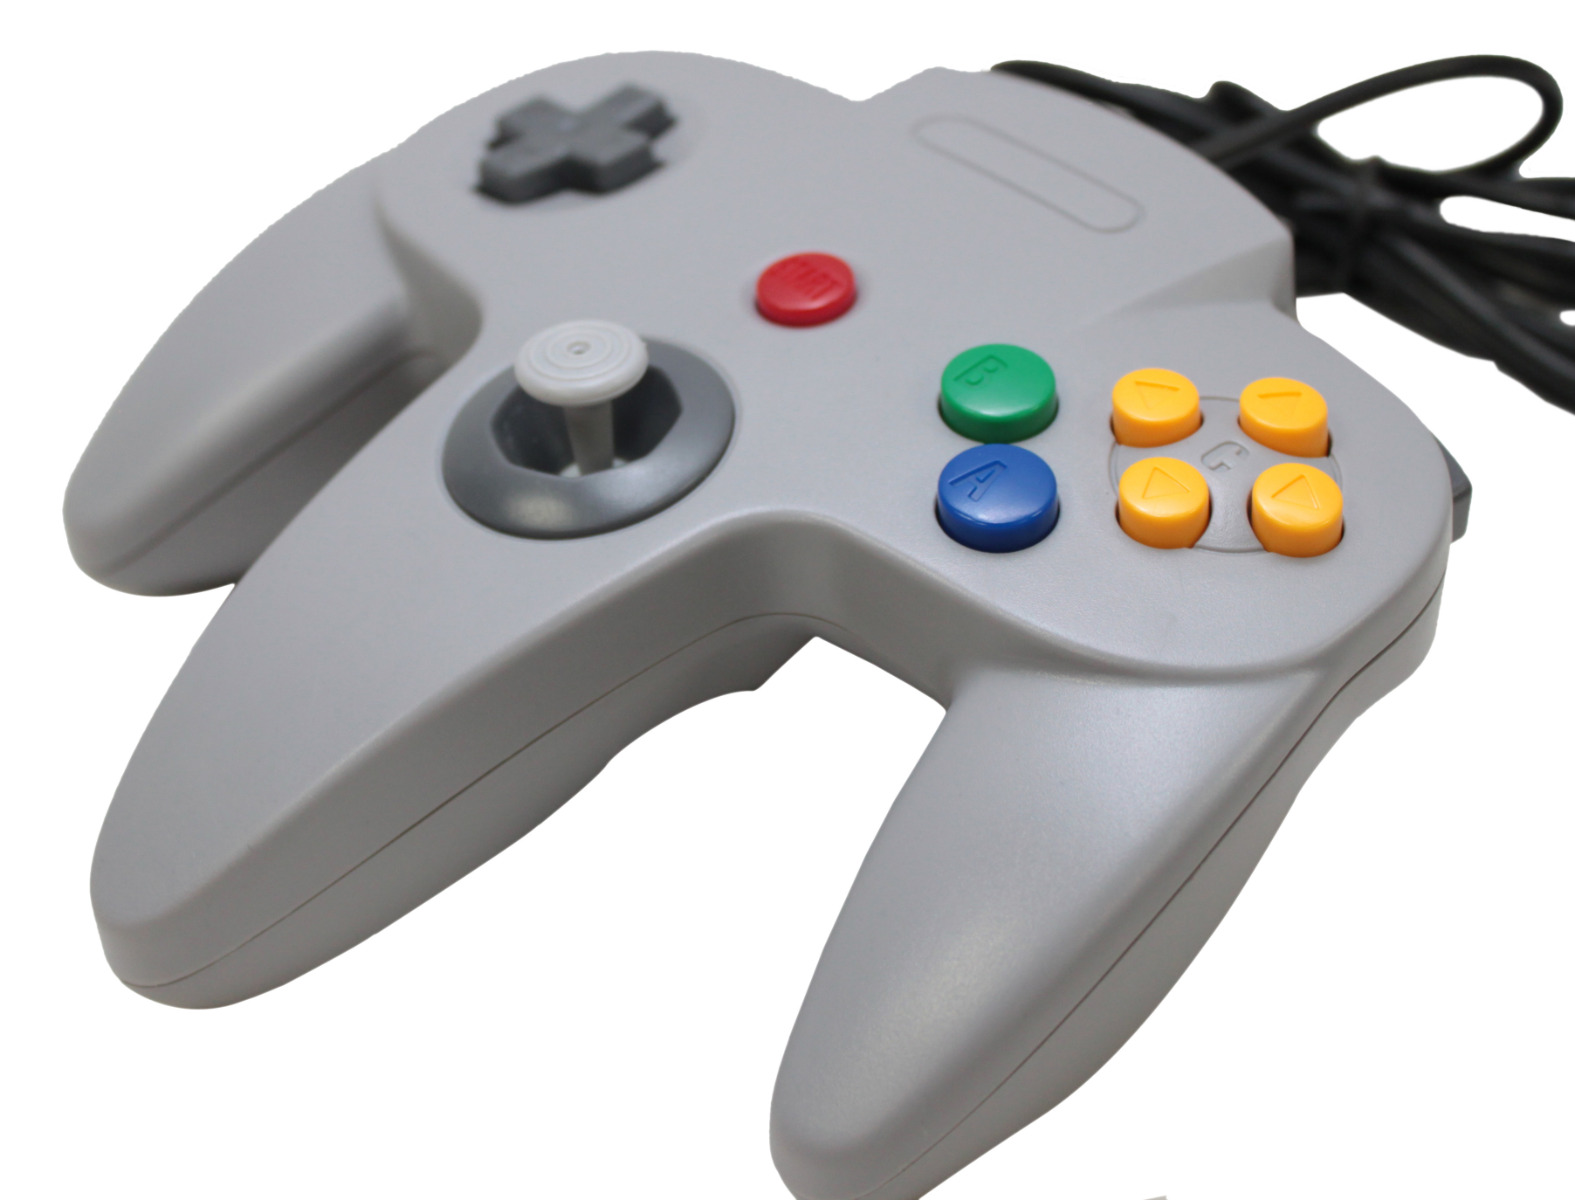 2 x NEW NINTENDO 64 N64 GREY USB CONTROLLER FOR PC WINDOWS/MAC GAMEPAD JOYSTICK